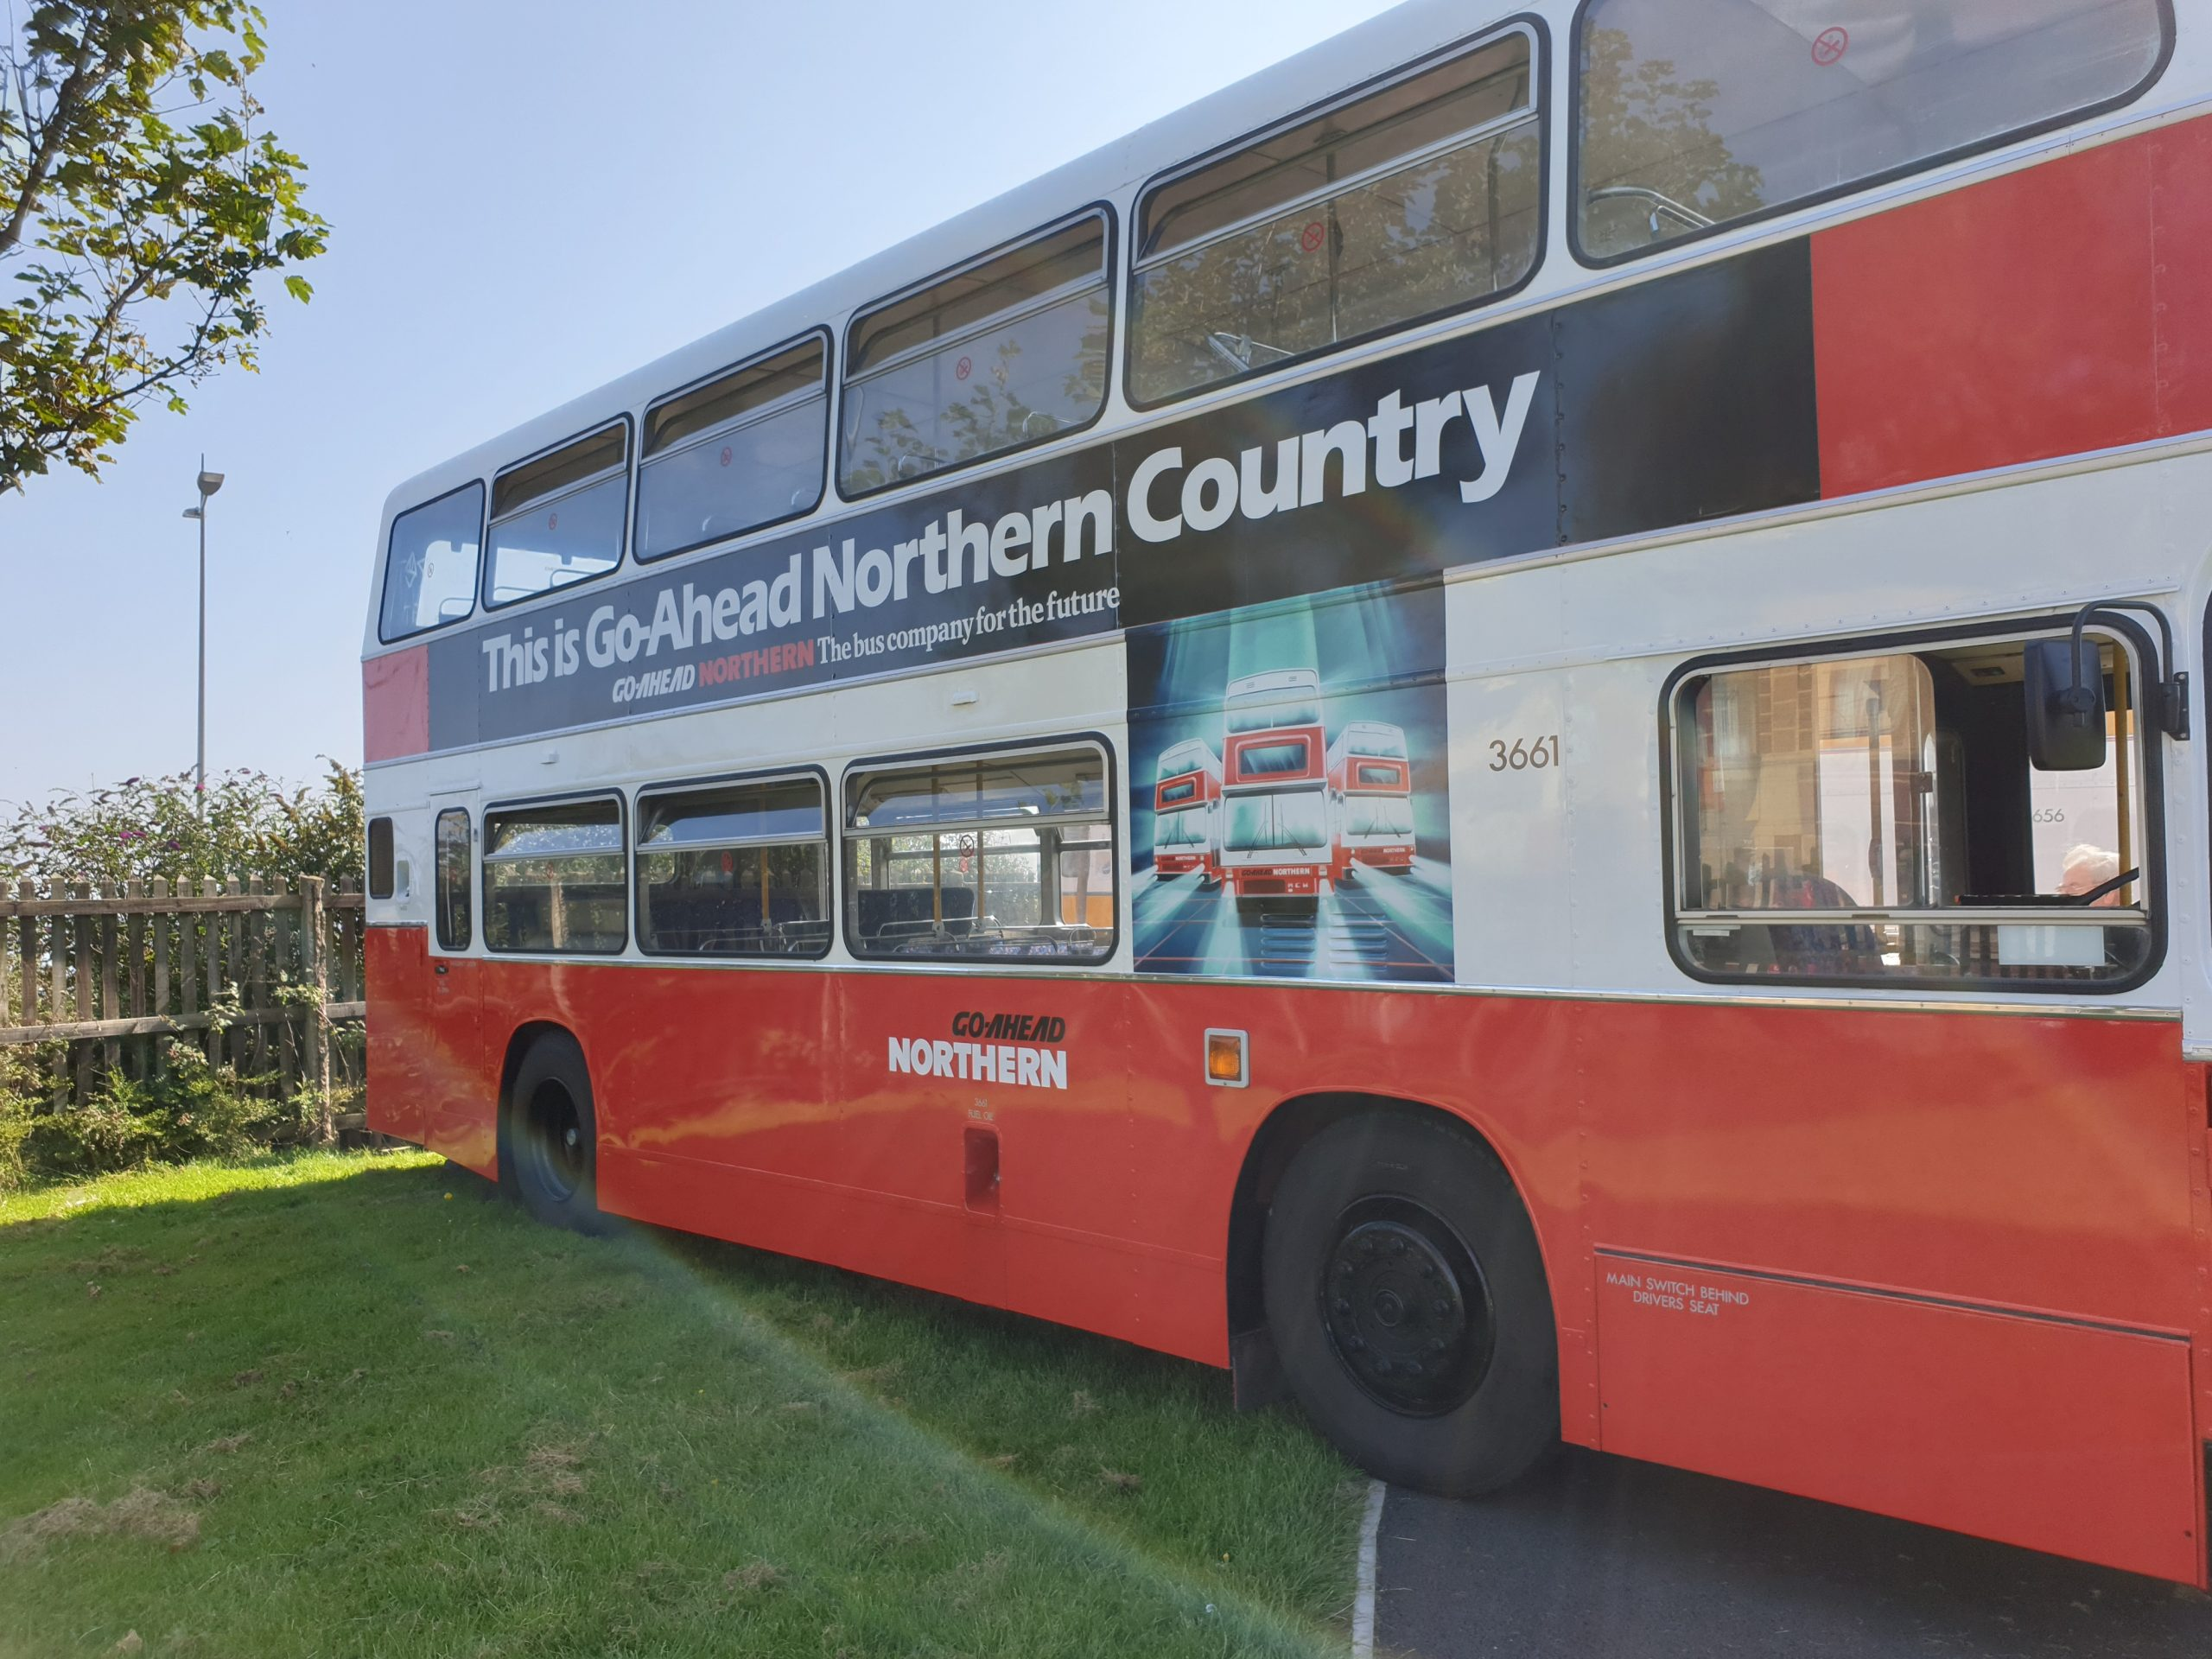 'Go Ahead Northern: The bus company for the future' advert, as seen on the stunningly restored Leyland Olympian 3661.